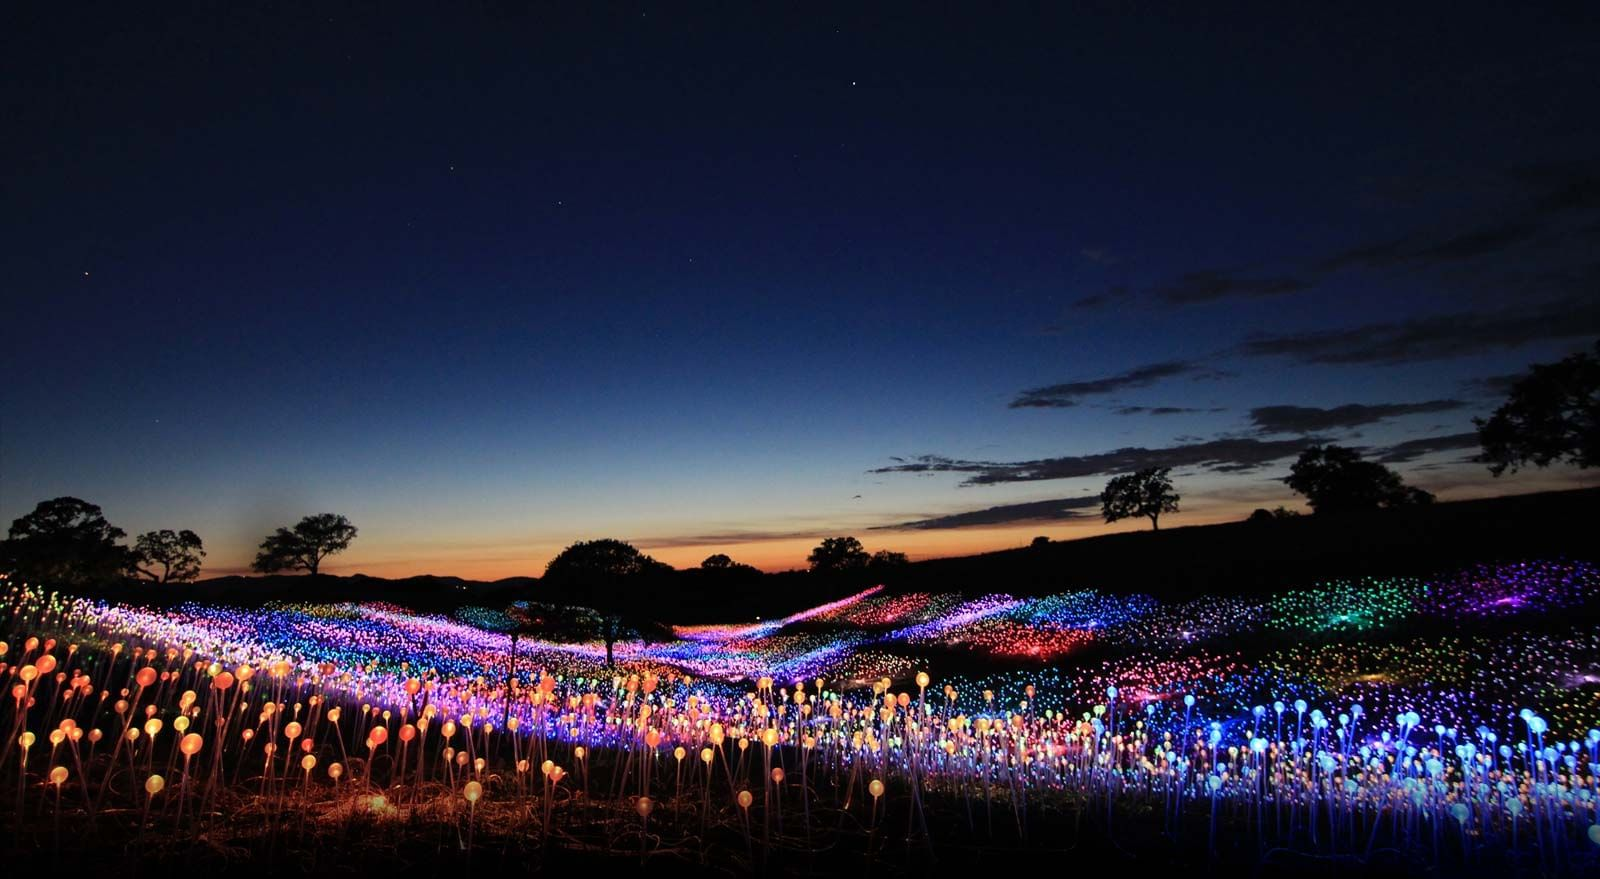 Field of Lights experience.  Many colors cover the field as the